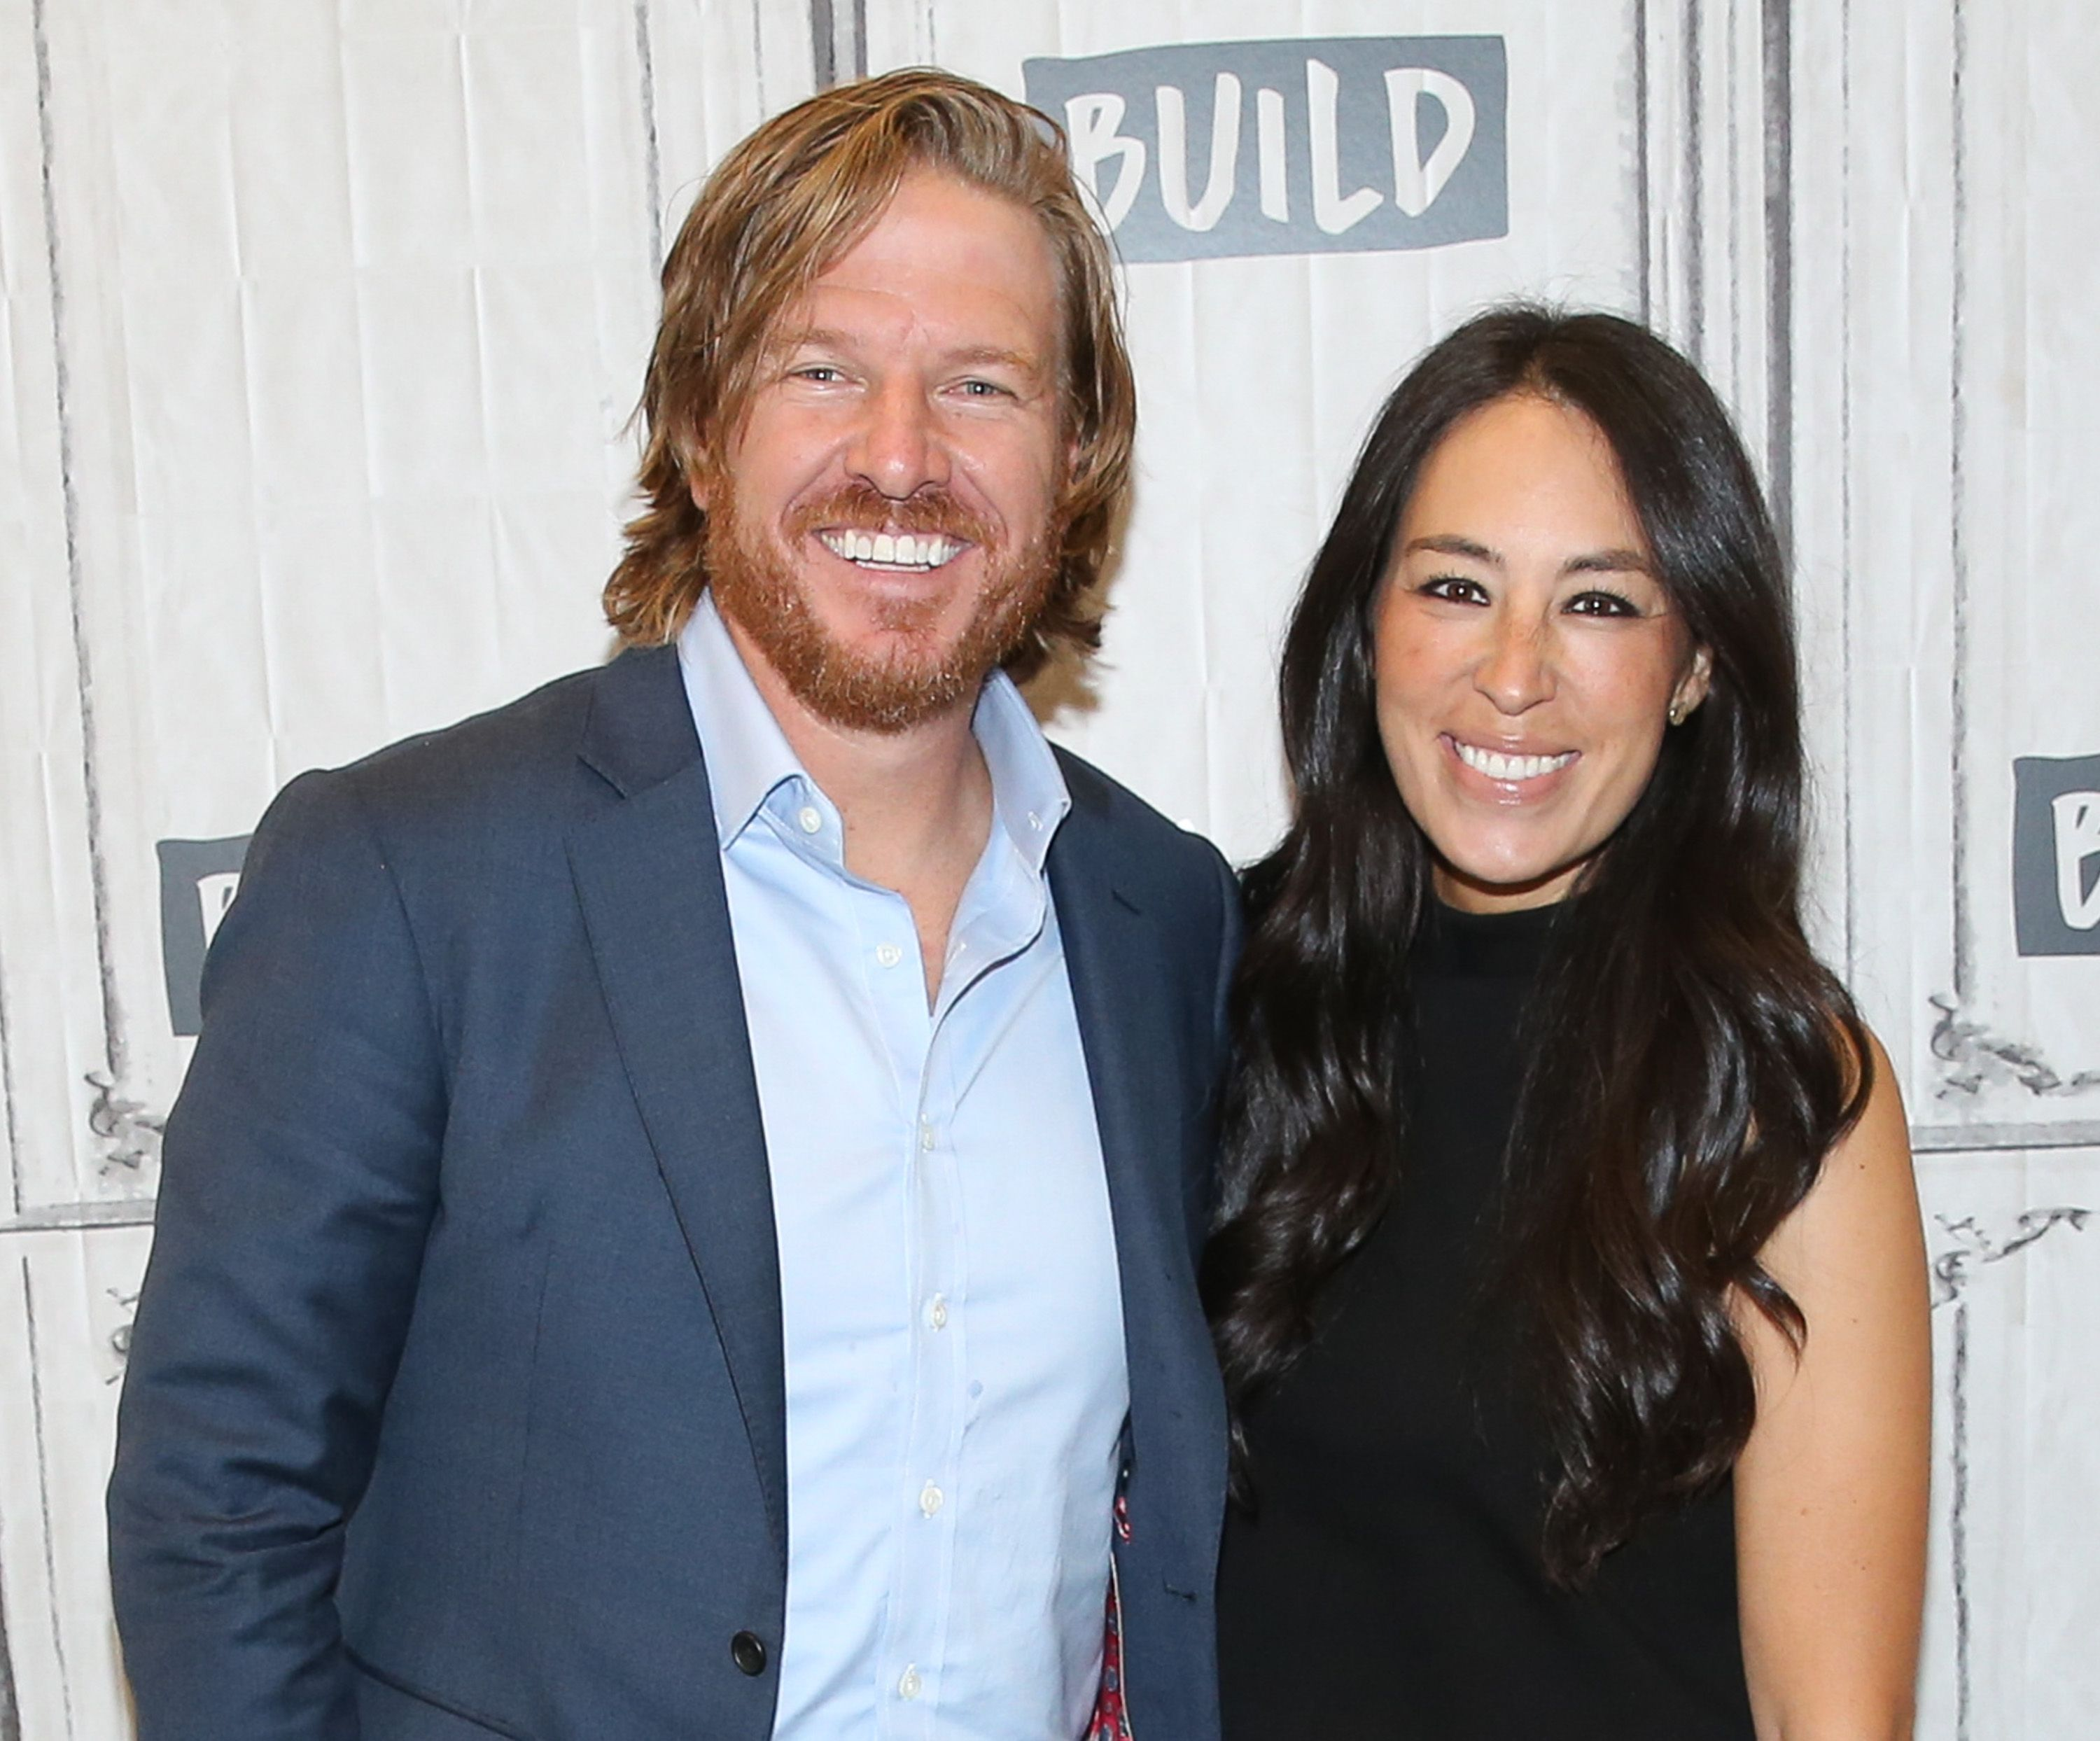 Chip Gaines and Joanna Gaines at the Build Series at Build Studio on October 18, 2017 in New York City | Photo: Getty Images